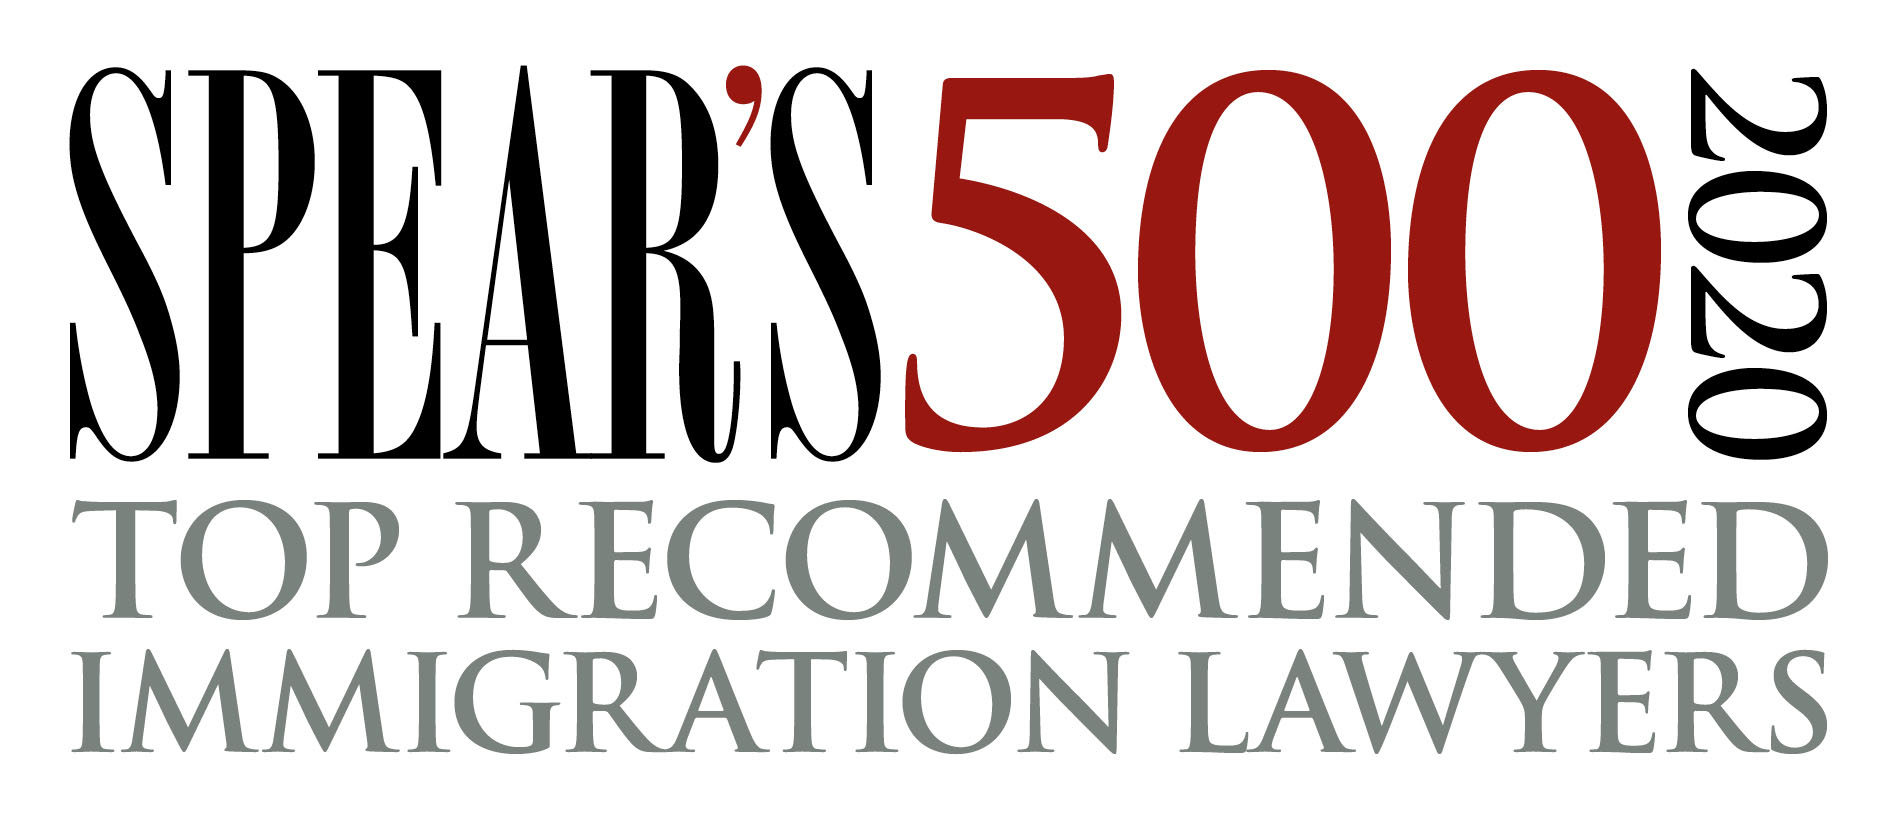 Spear's 500 2020 Top recommended immigration lawyers